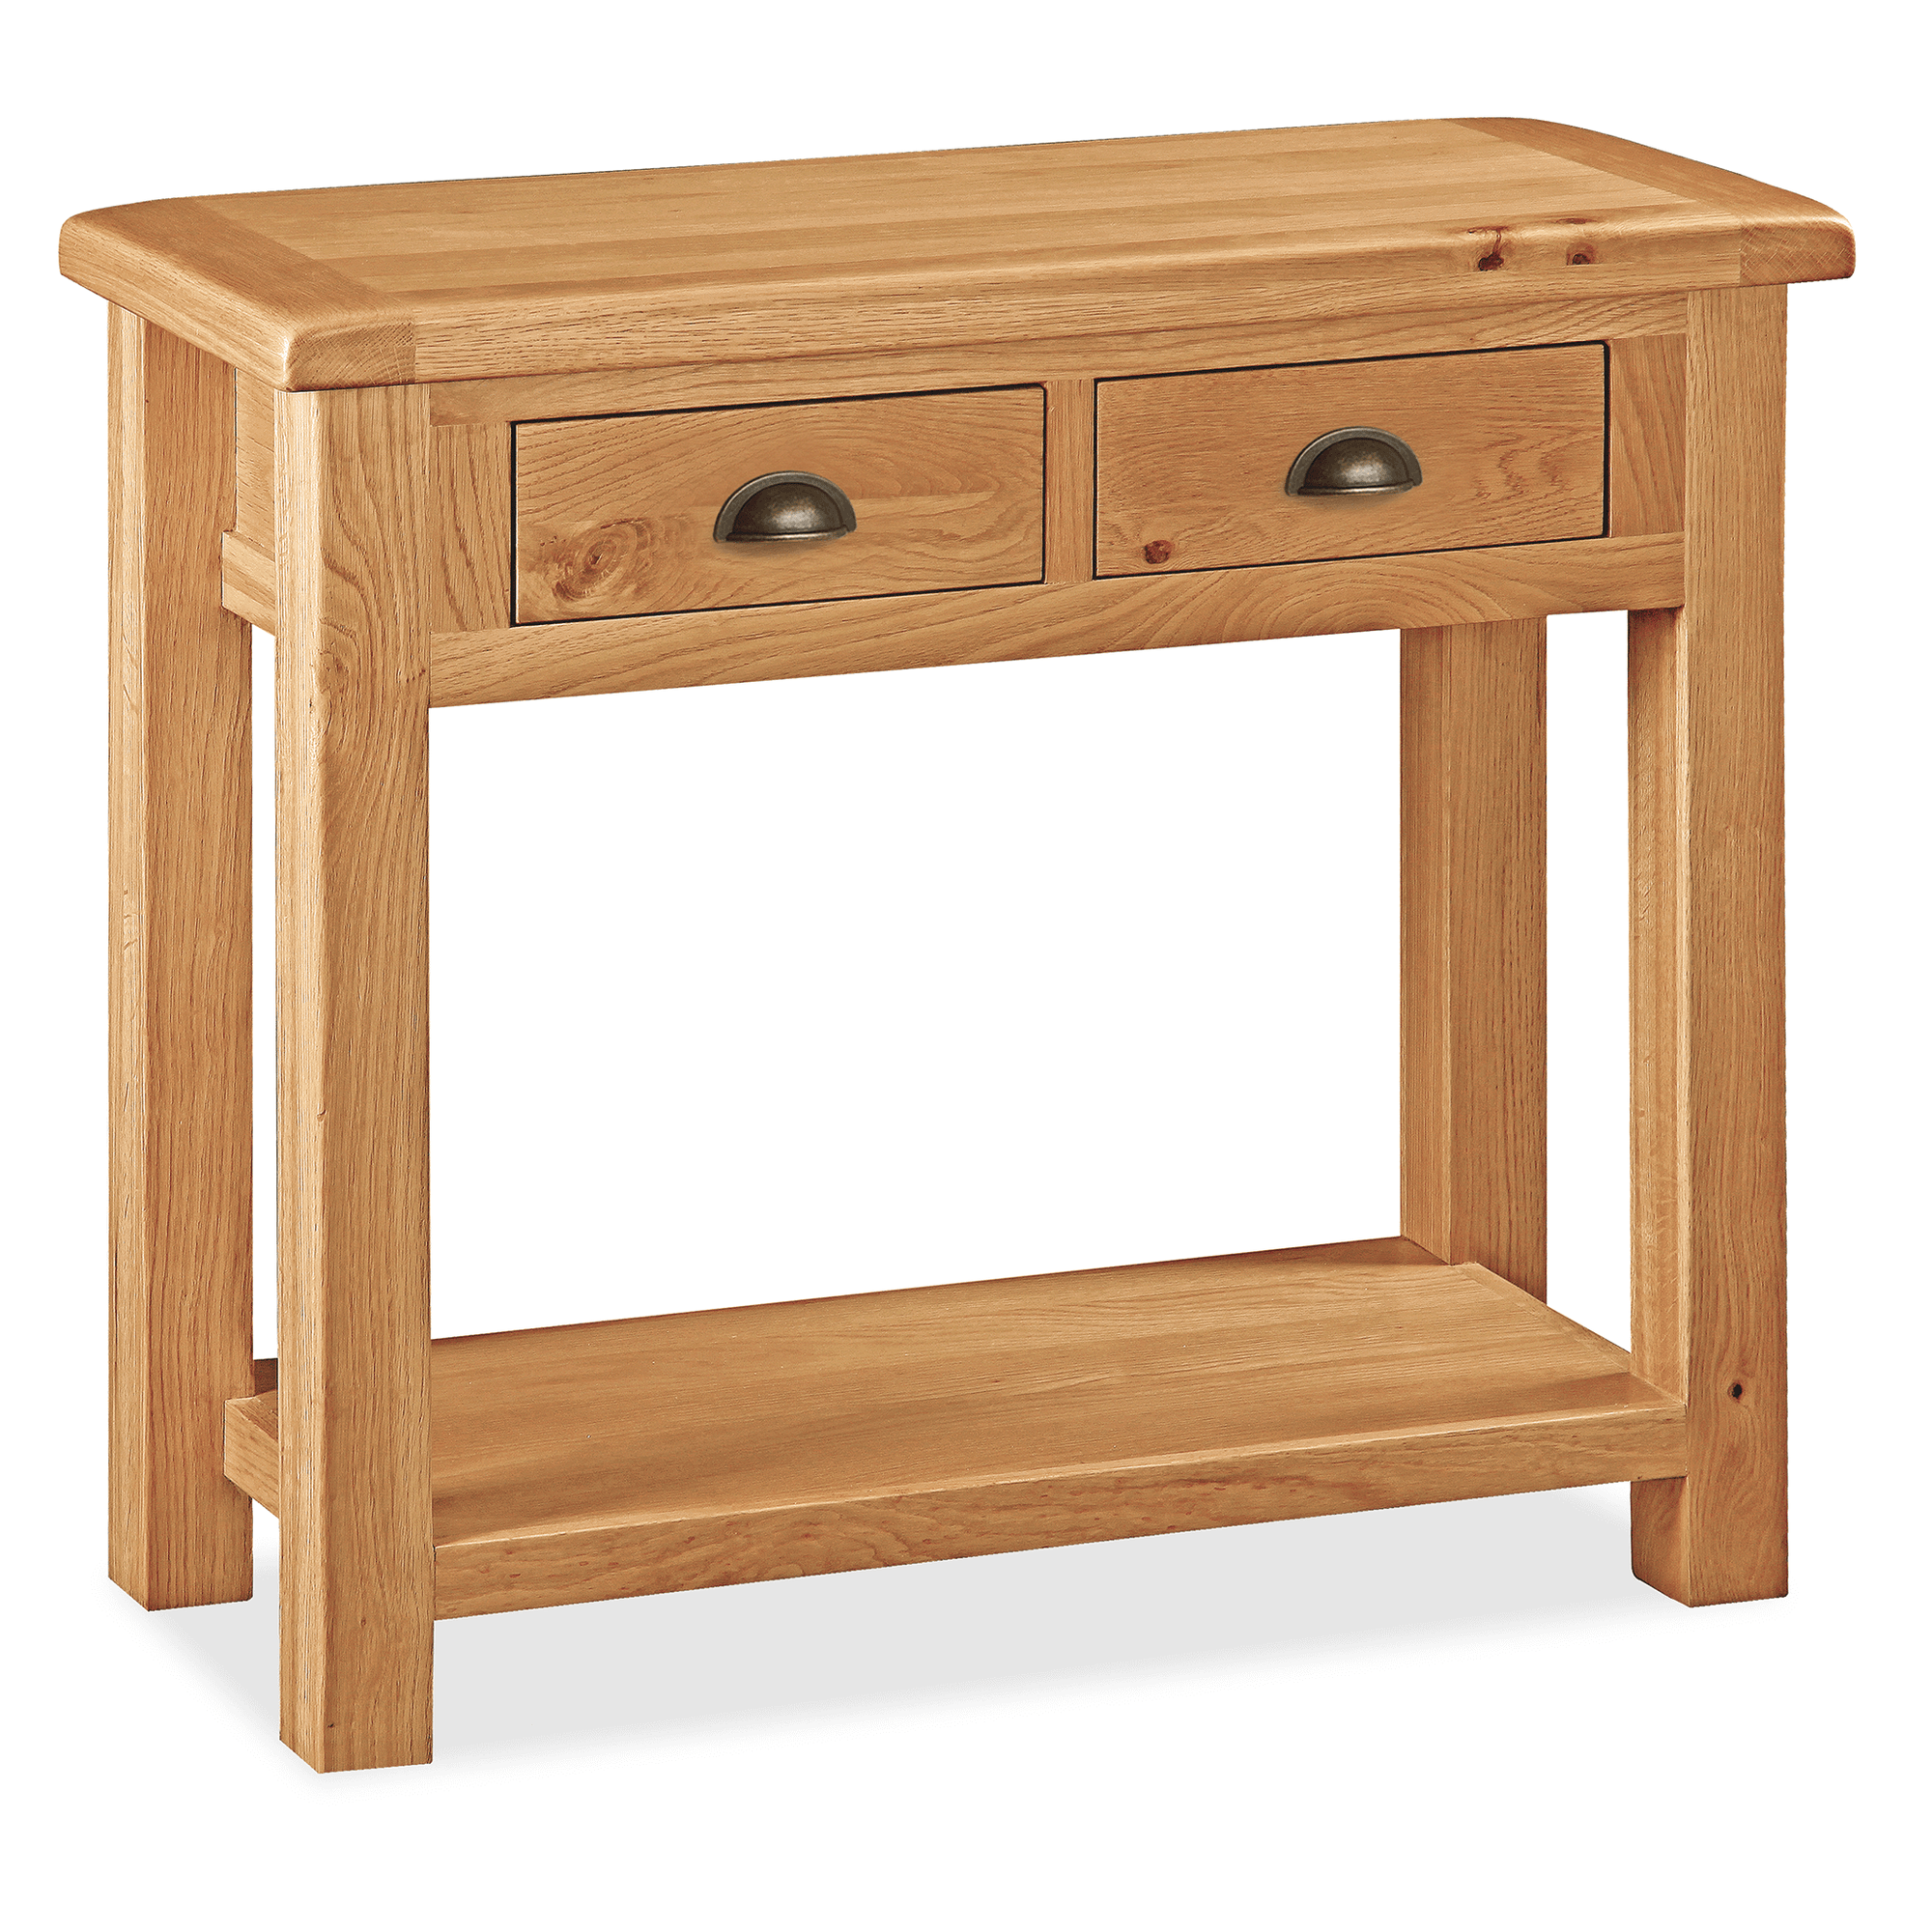 Sidmouth Oak Console Table by Roseland Furniture